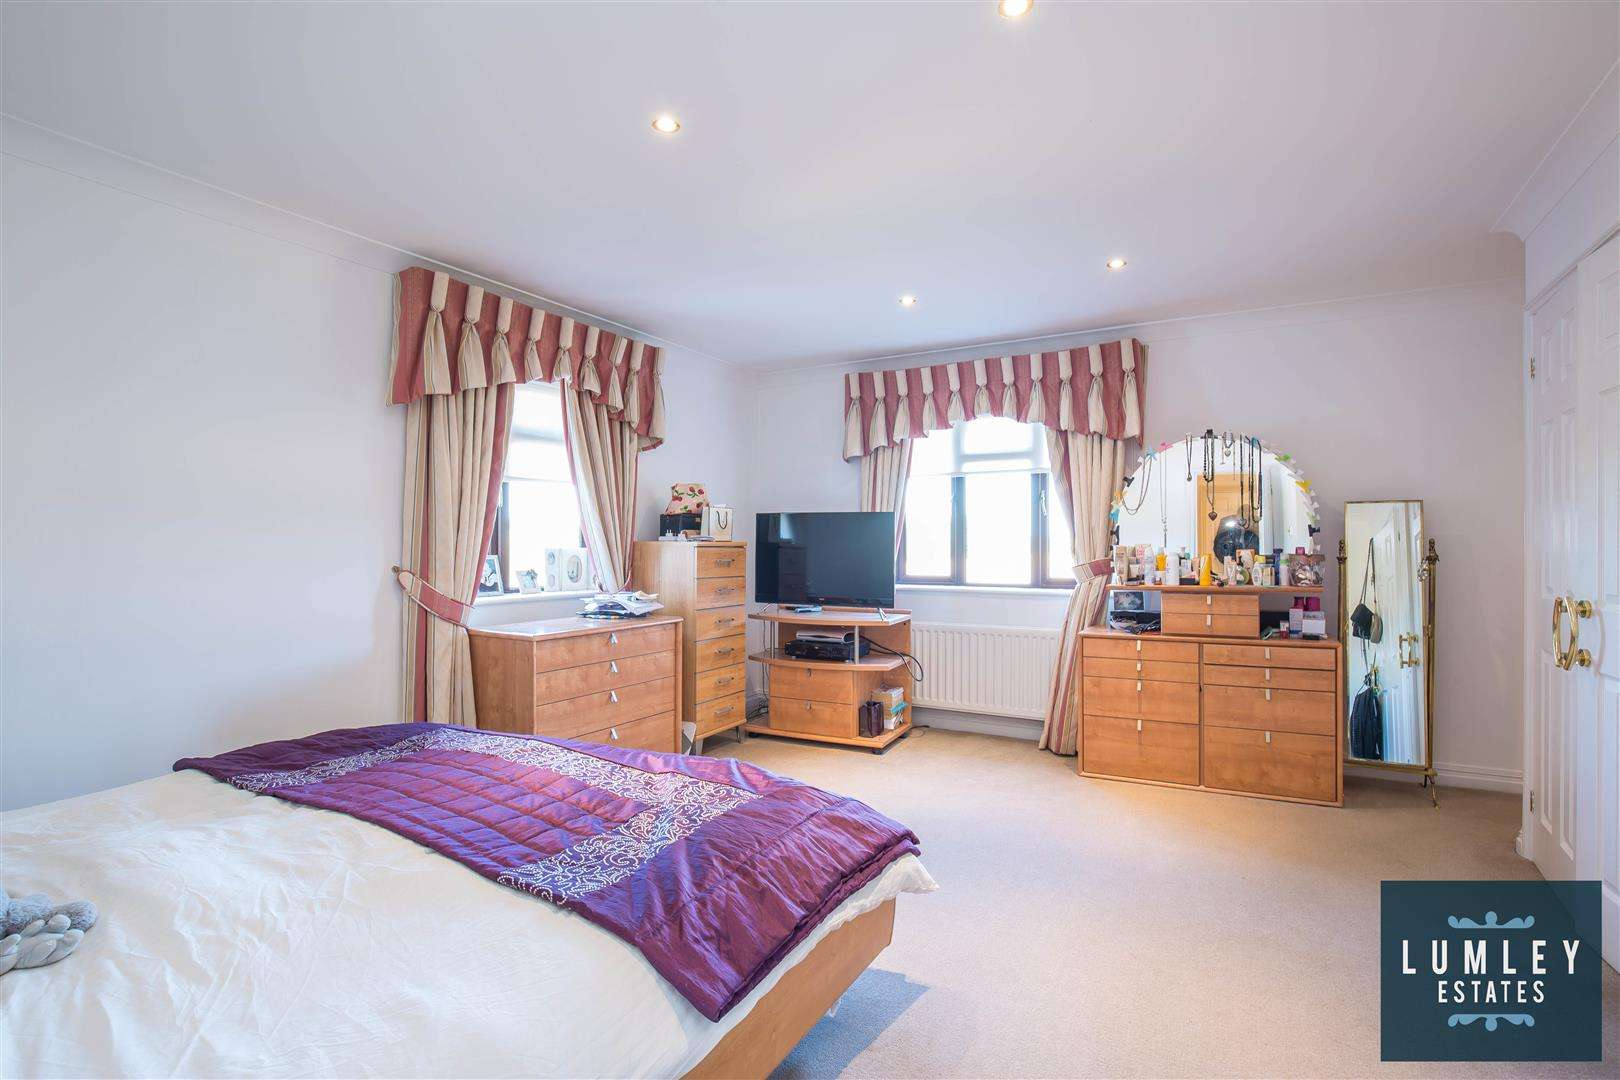 6 bed to rent - (Property Image 7)